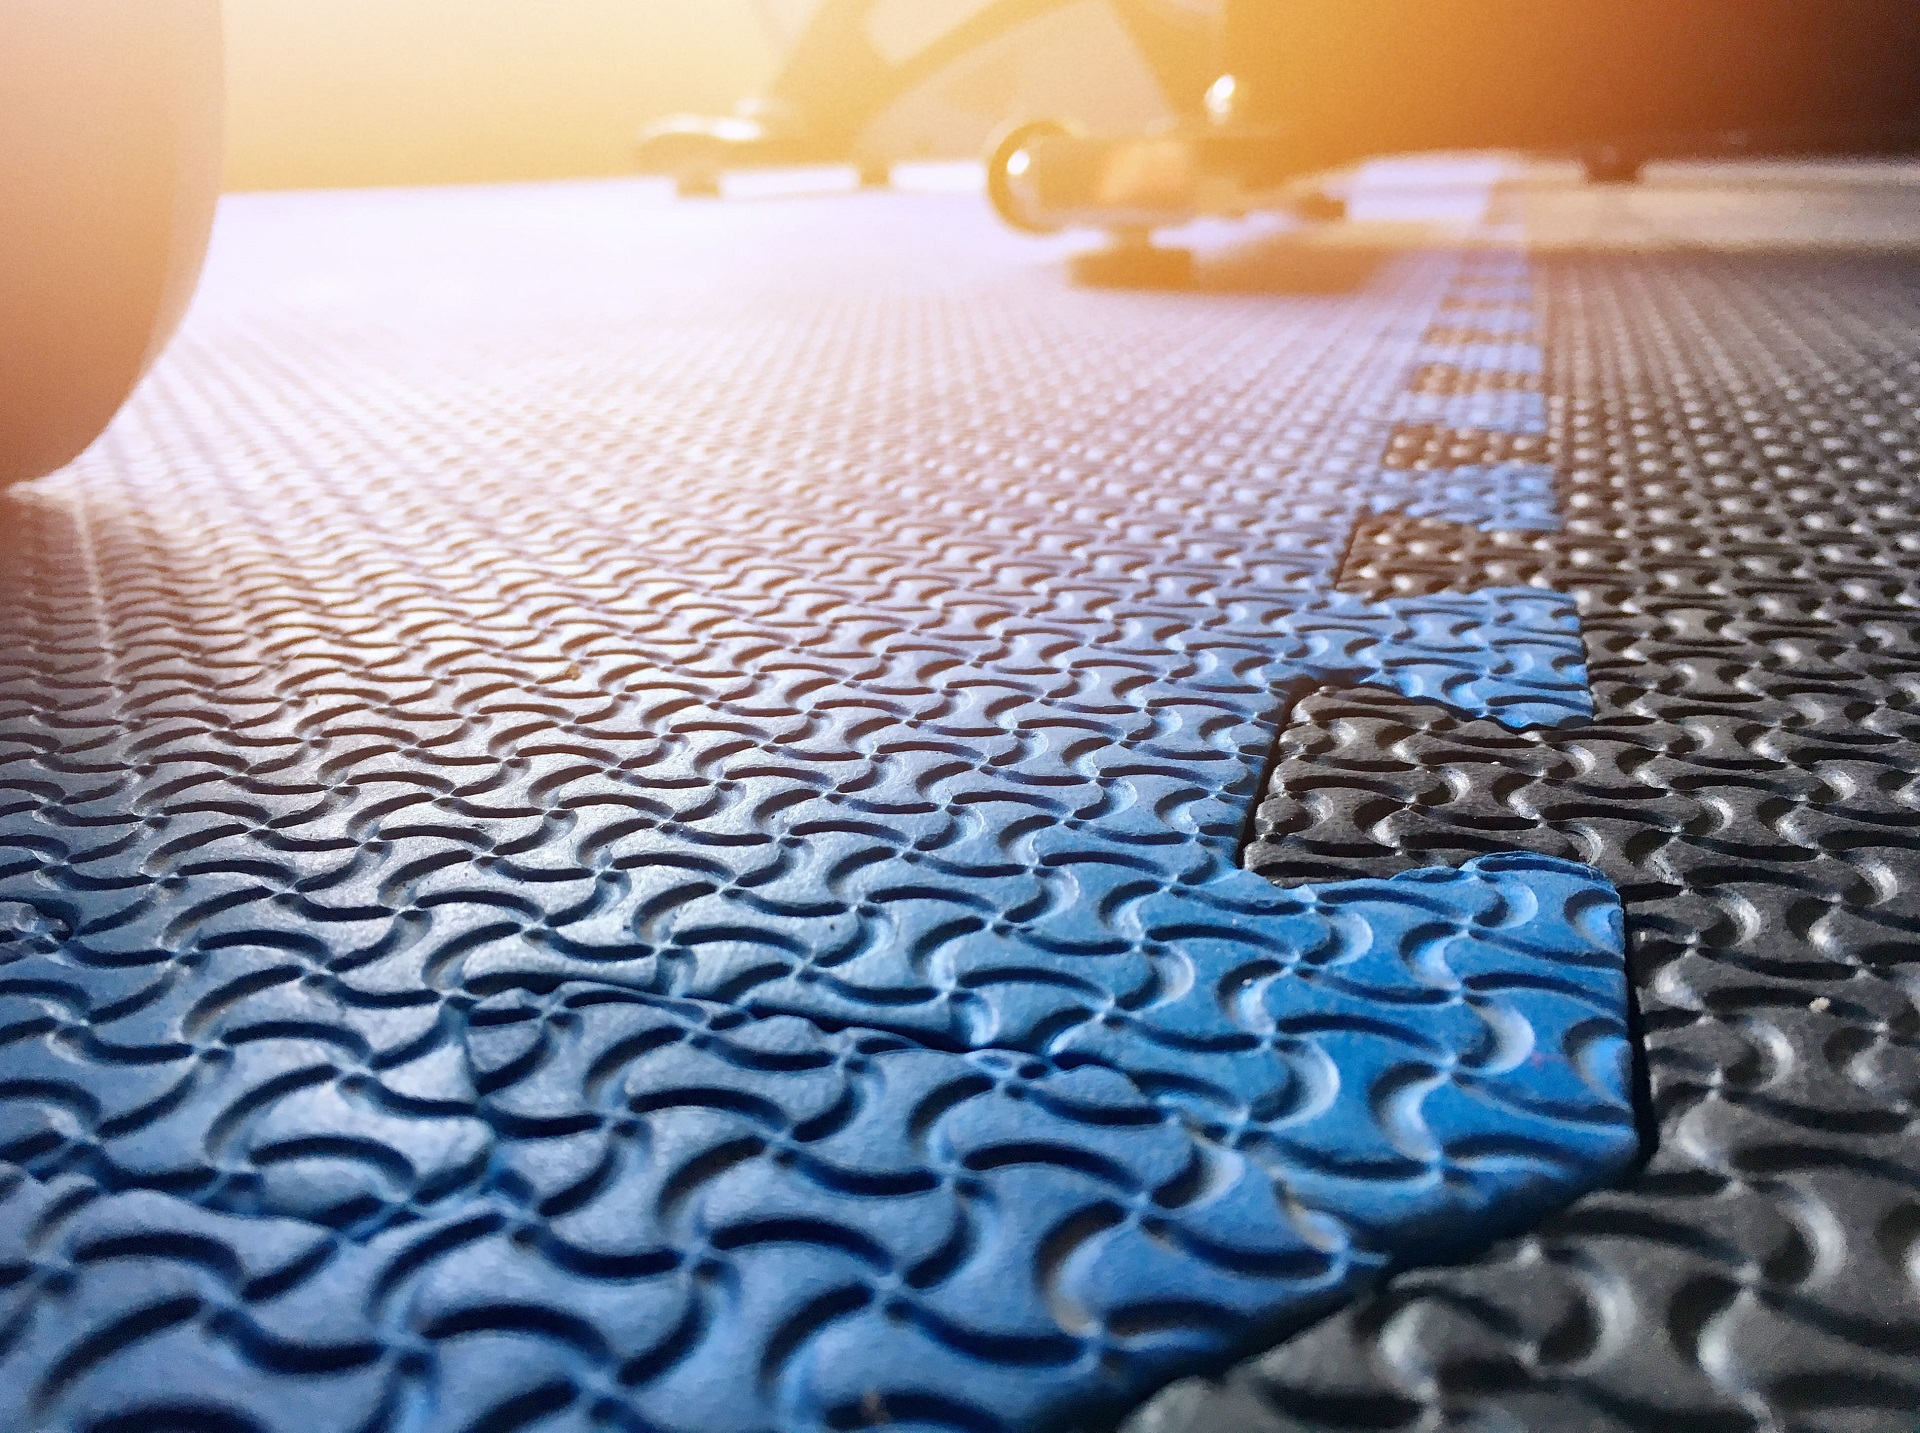 Rubber Tiles-Fort Myers Safety Surfacing